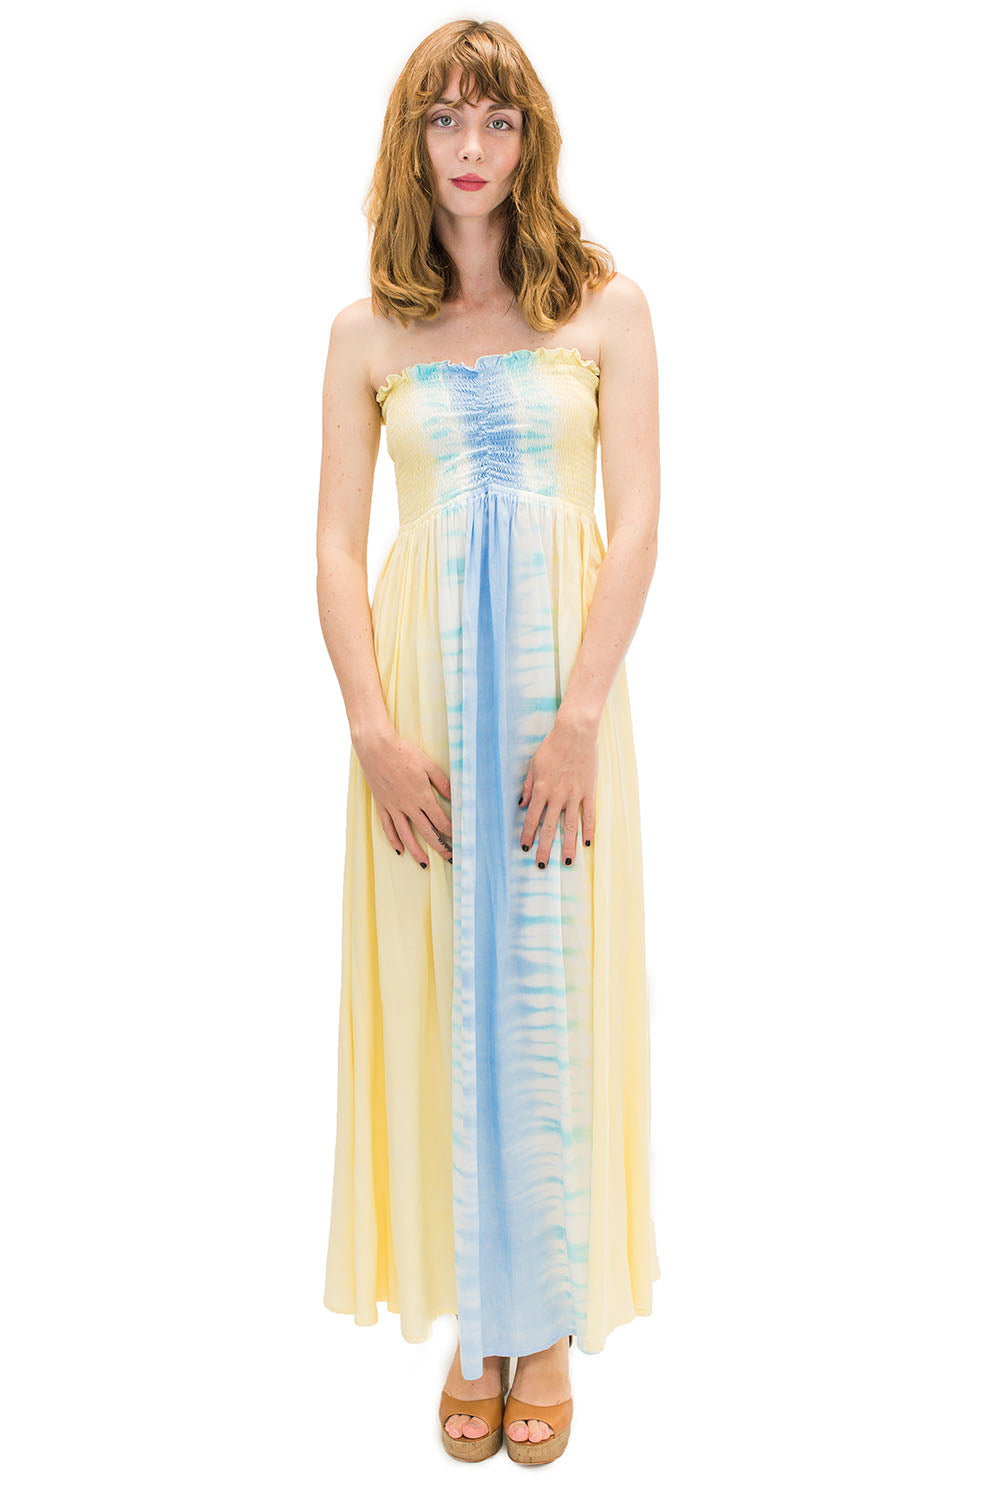 Kula Long Dress in Bold Yellow